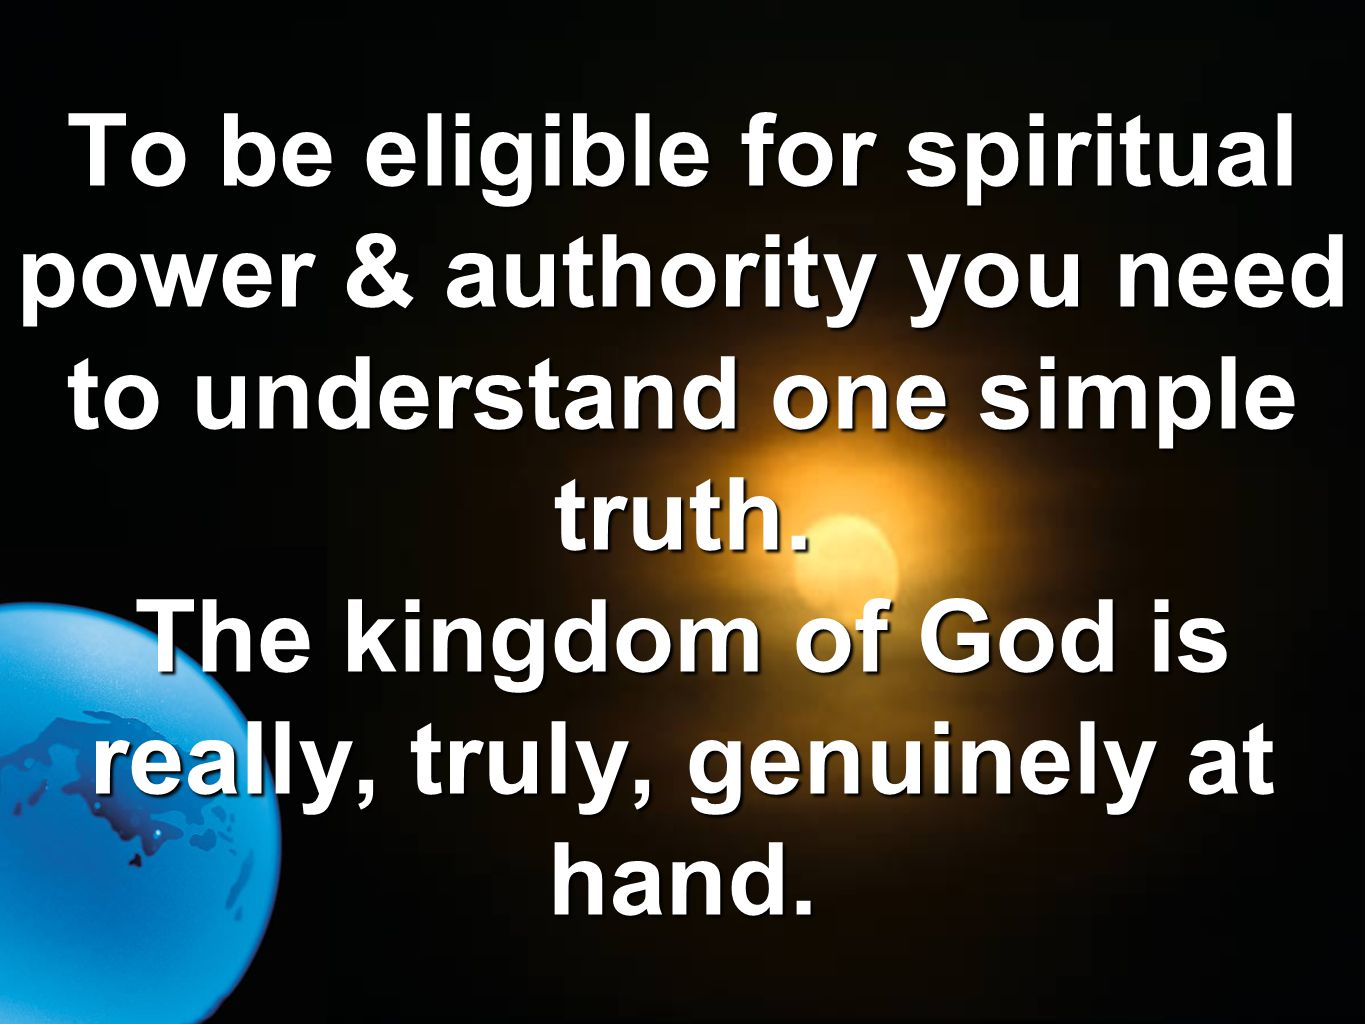 To be eligible for spiritual power & authority you need to understand one simple truth.